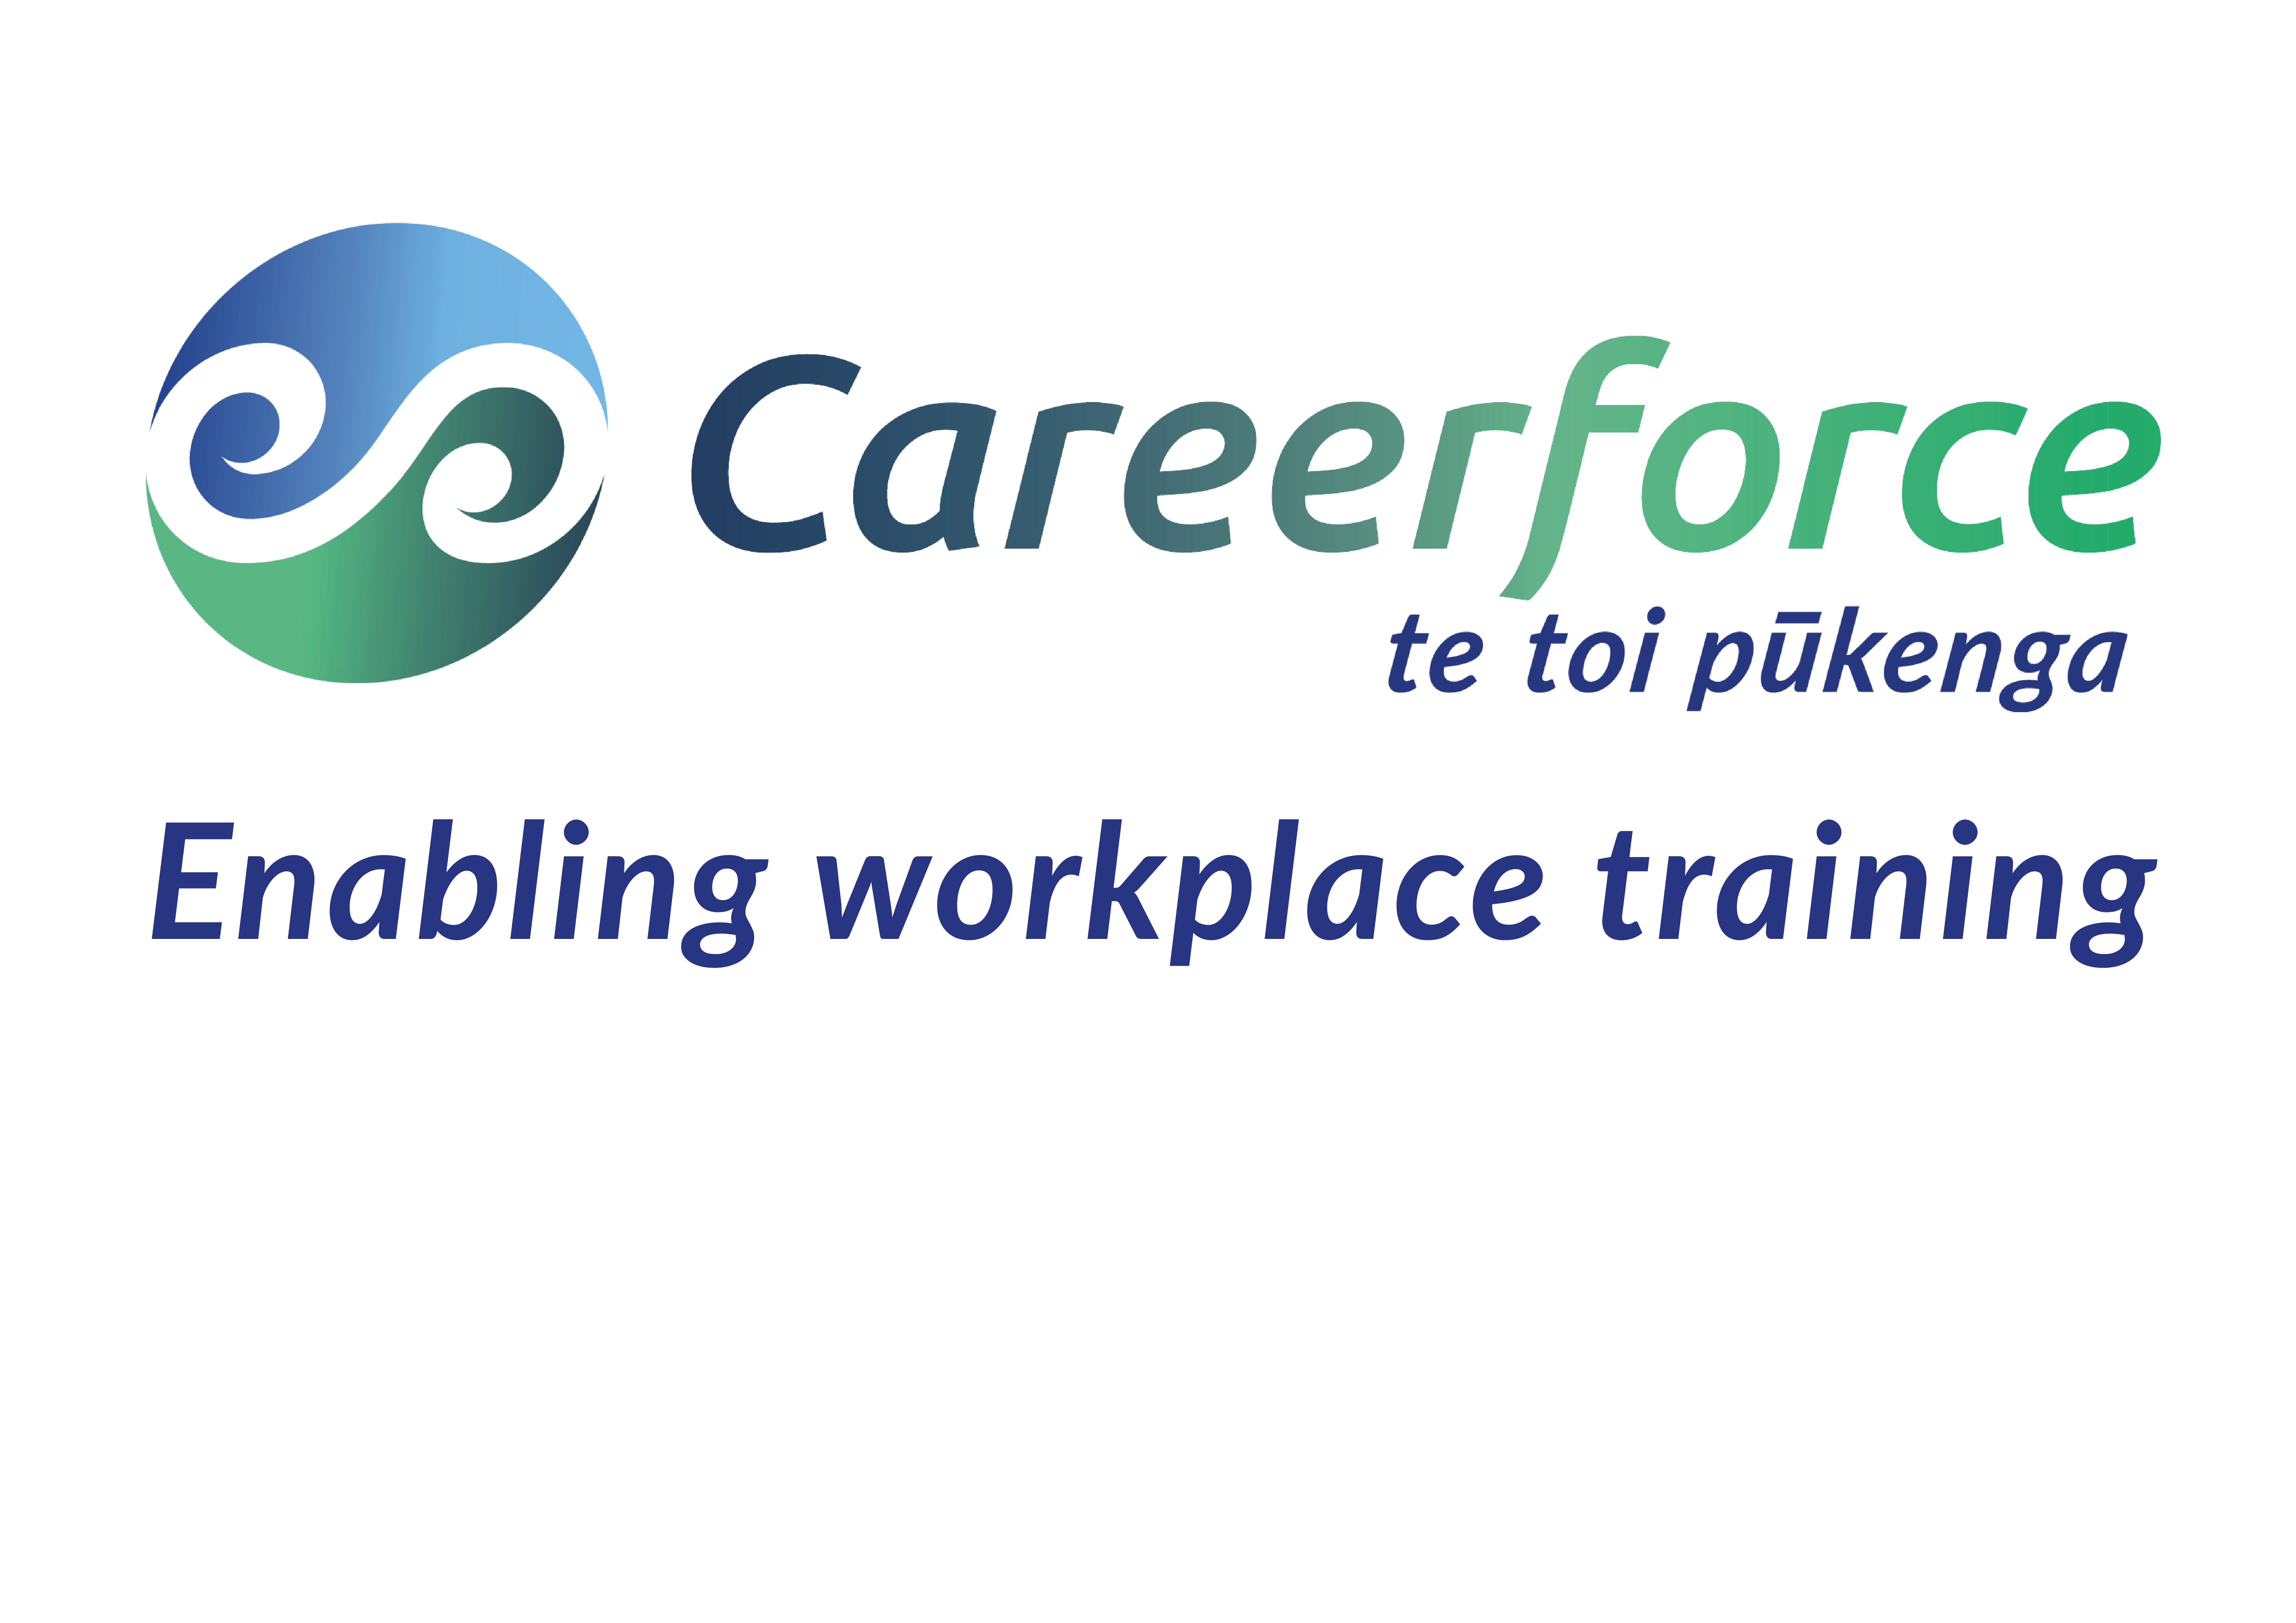 Careerforce logo with tagline